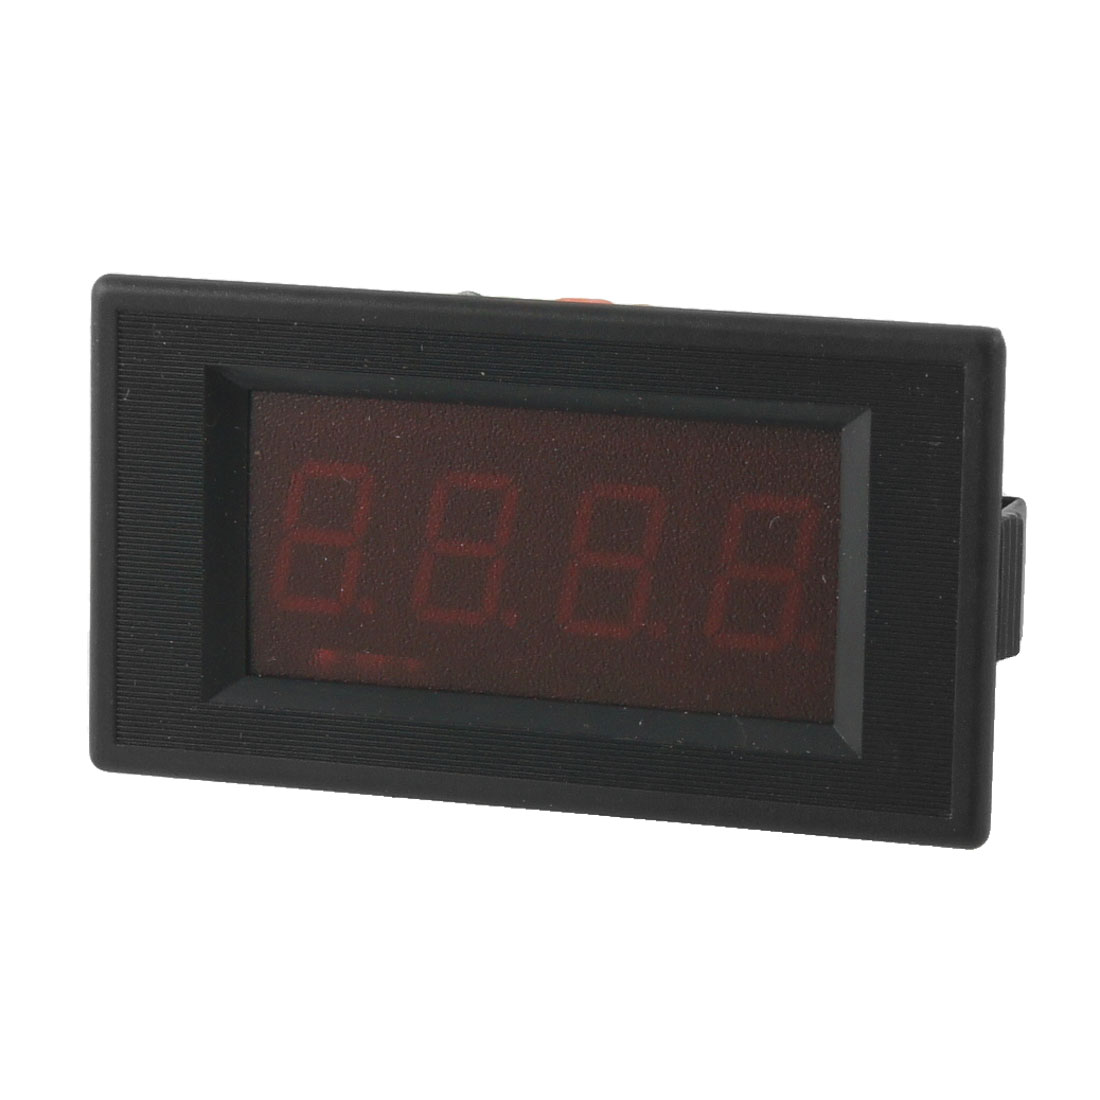 DC 0-500mA 3 1/2 Digital Red LED Display Ampere Panel Meter Ammeter